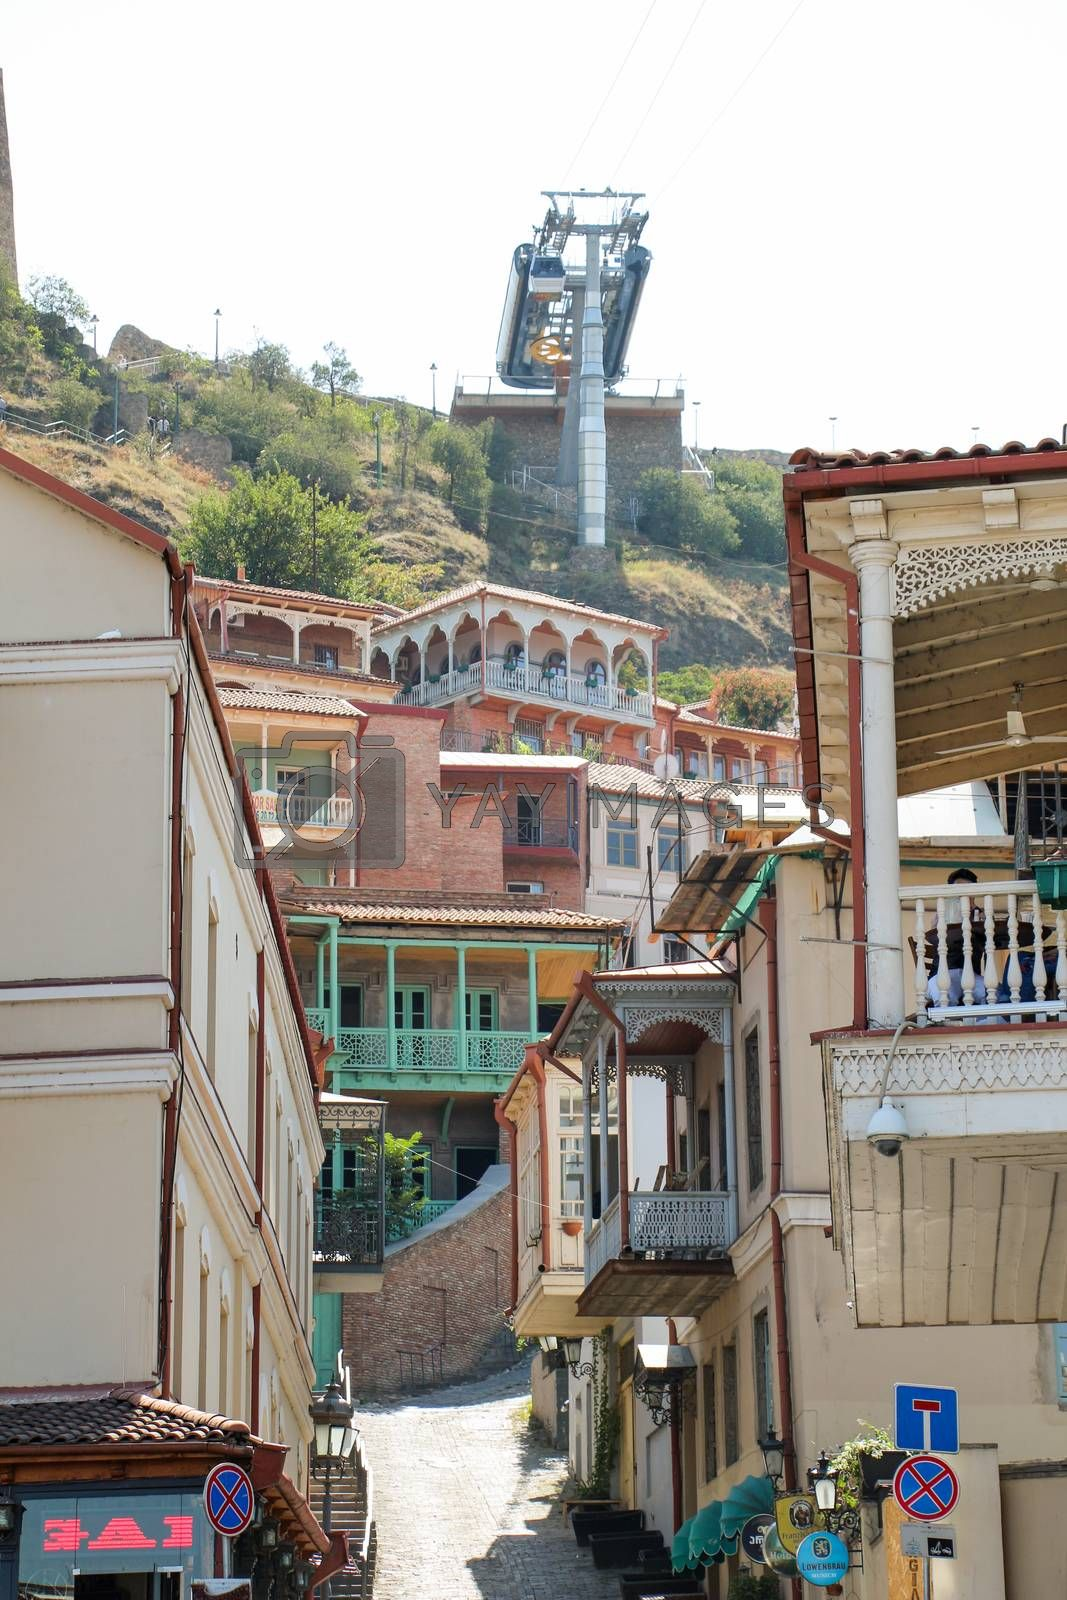 View of traditional narrow streets of Old Tbilisi